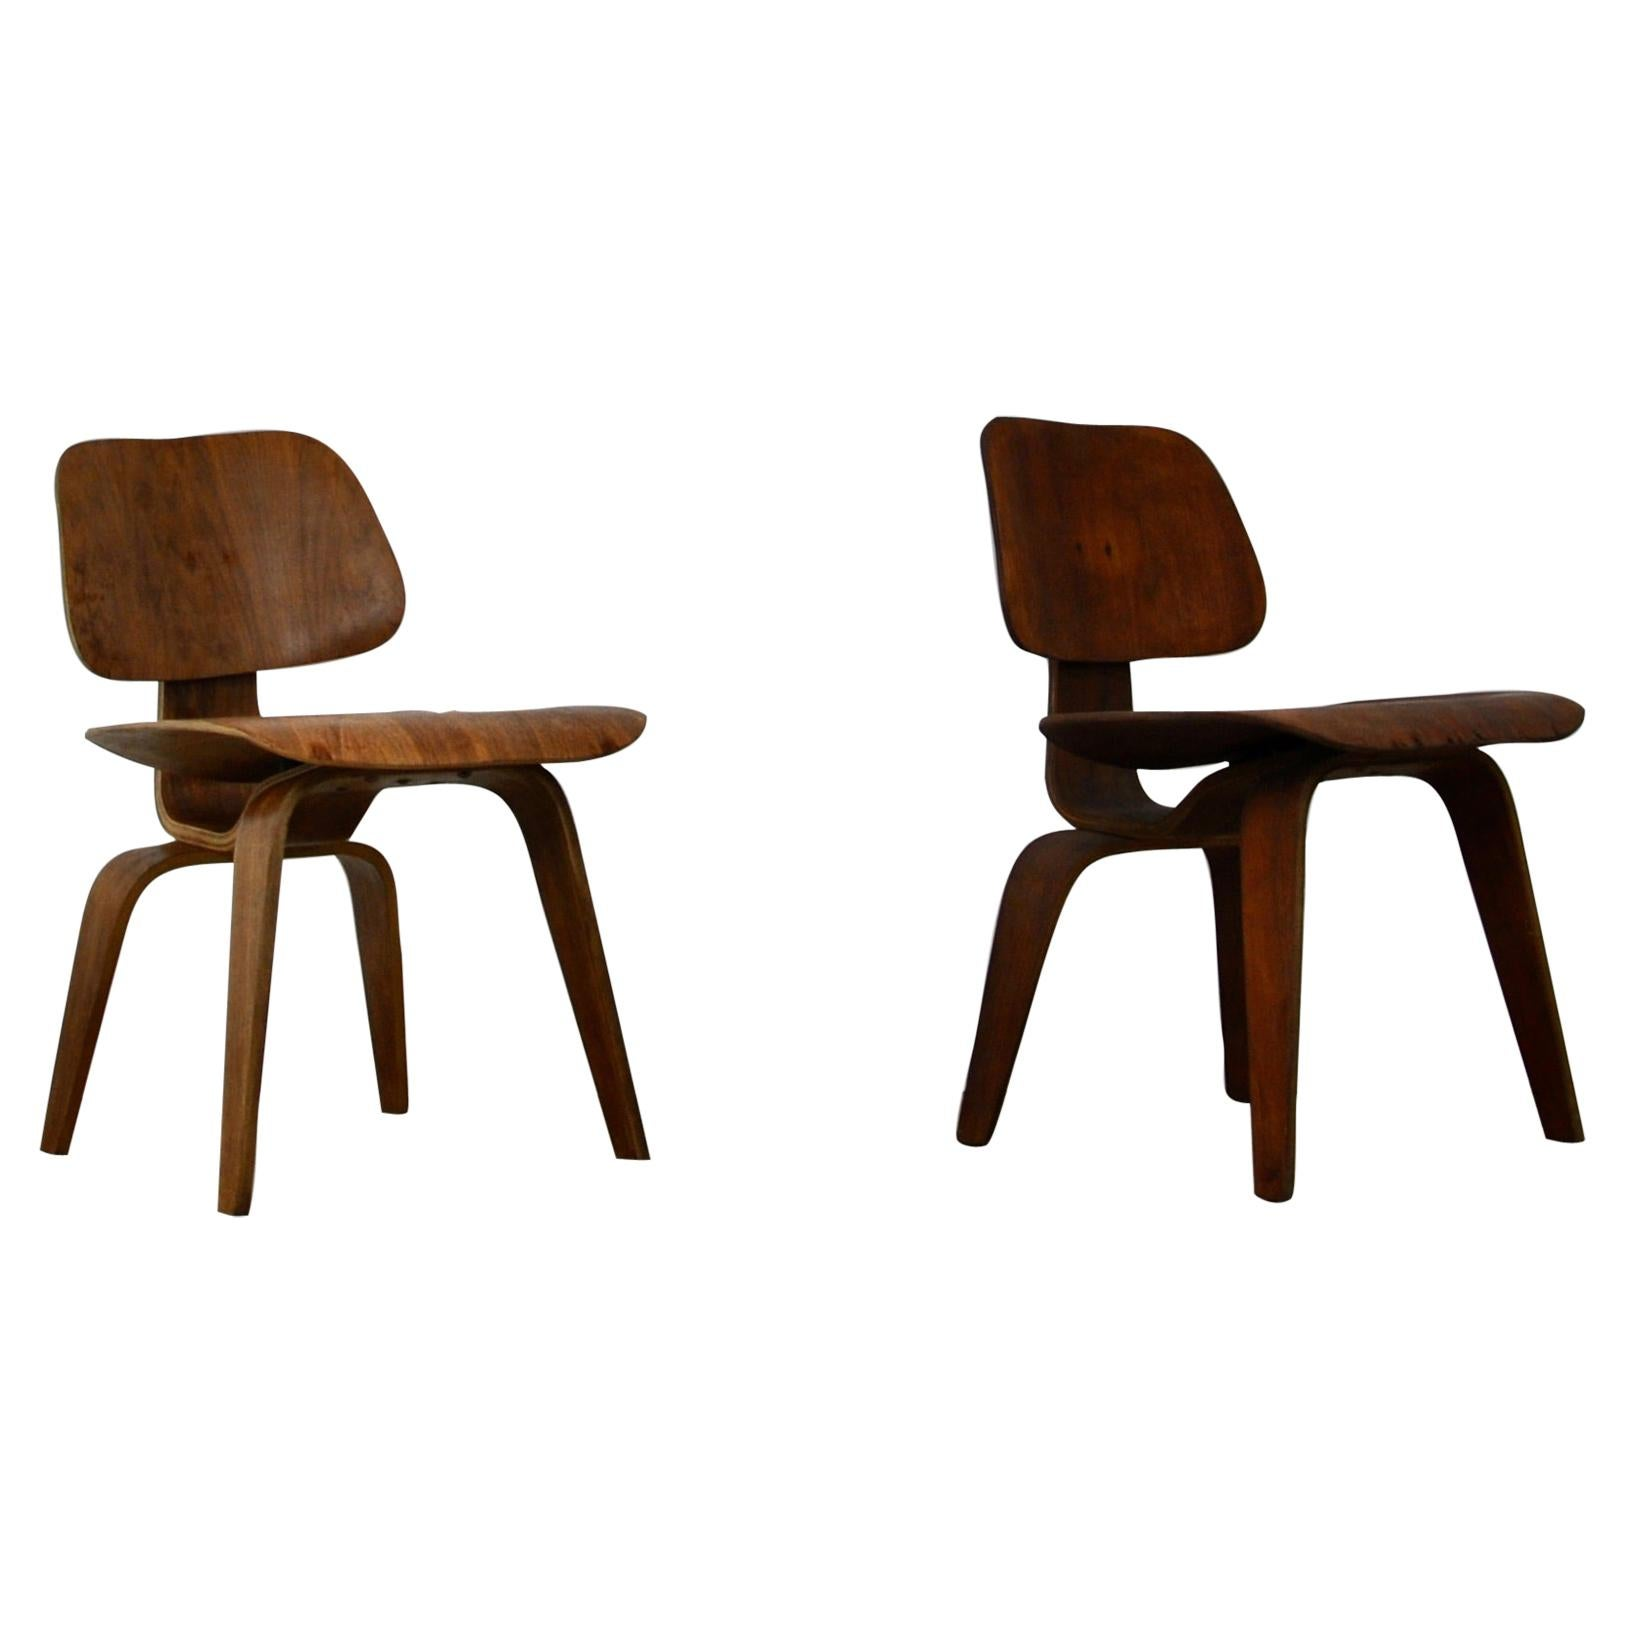 Plywood Chair DCW by Charles Eames for Evans, 1950s